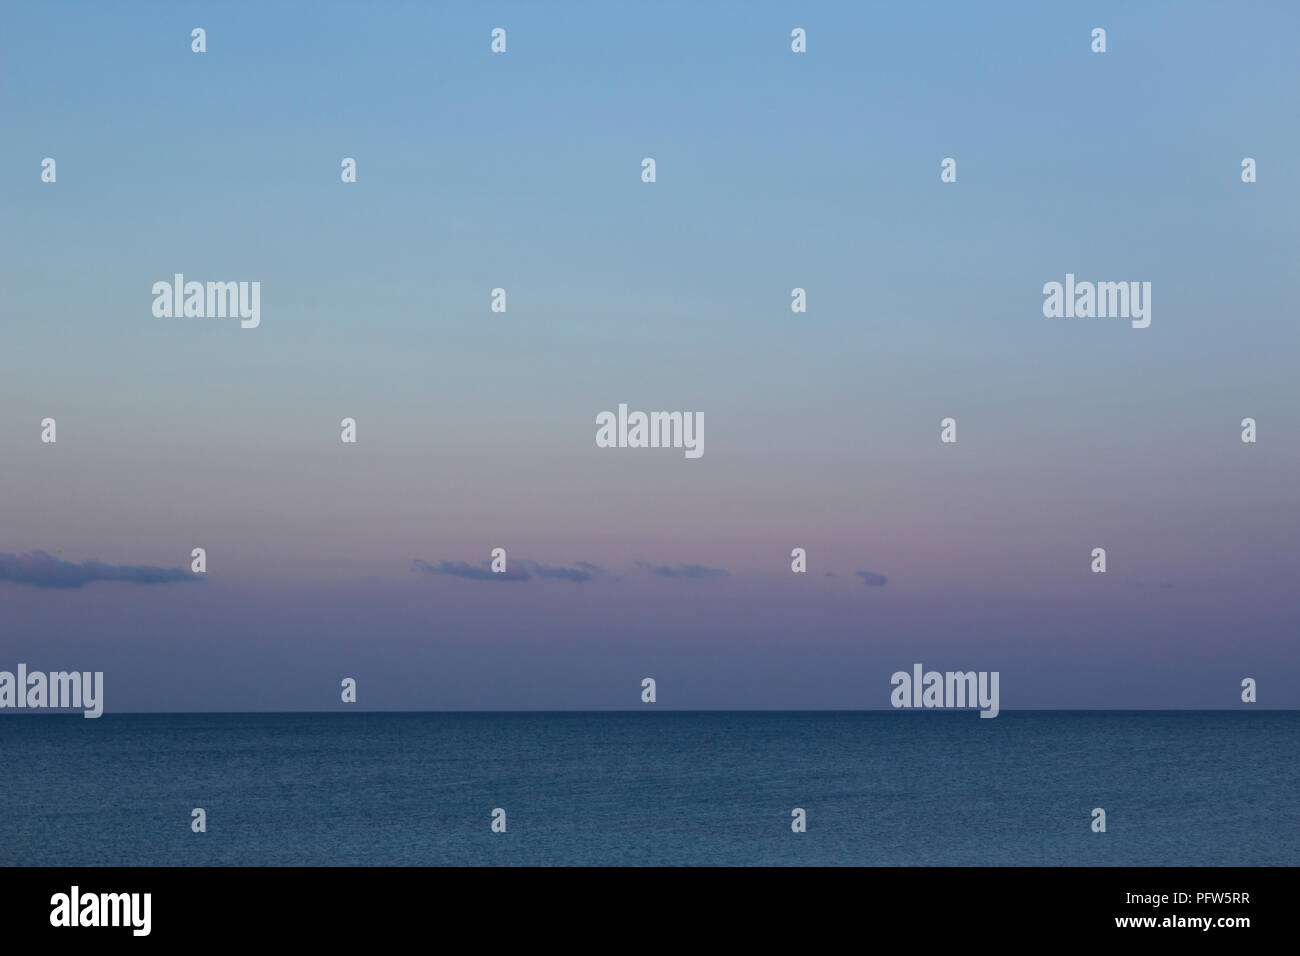 The Kattegat sea stretching to the horizon, with a sky colored violet and blue at dusk. - Stock Image